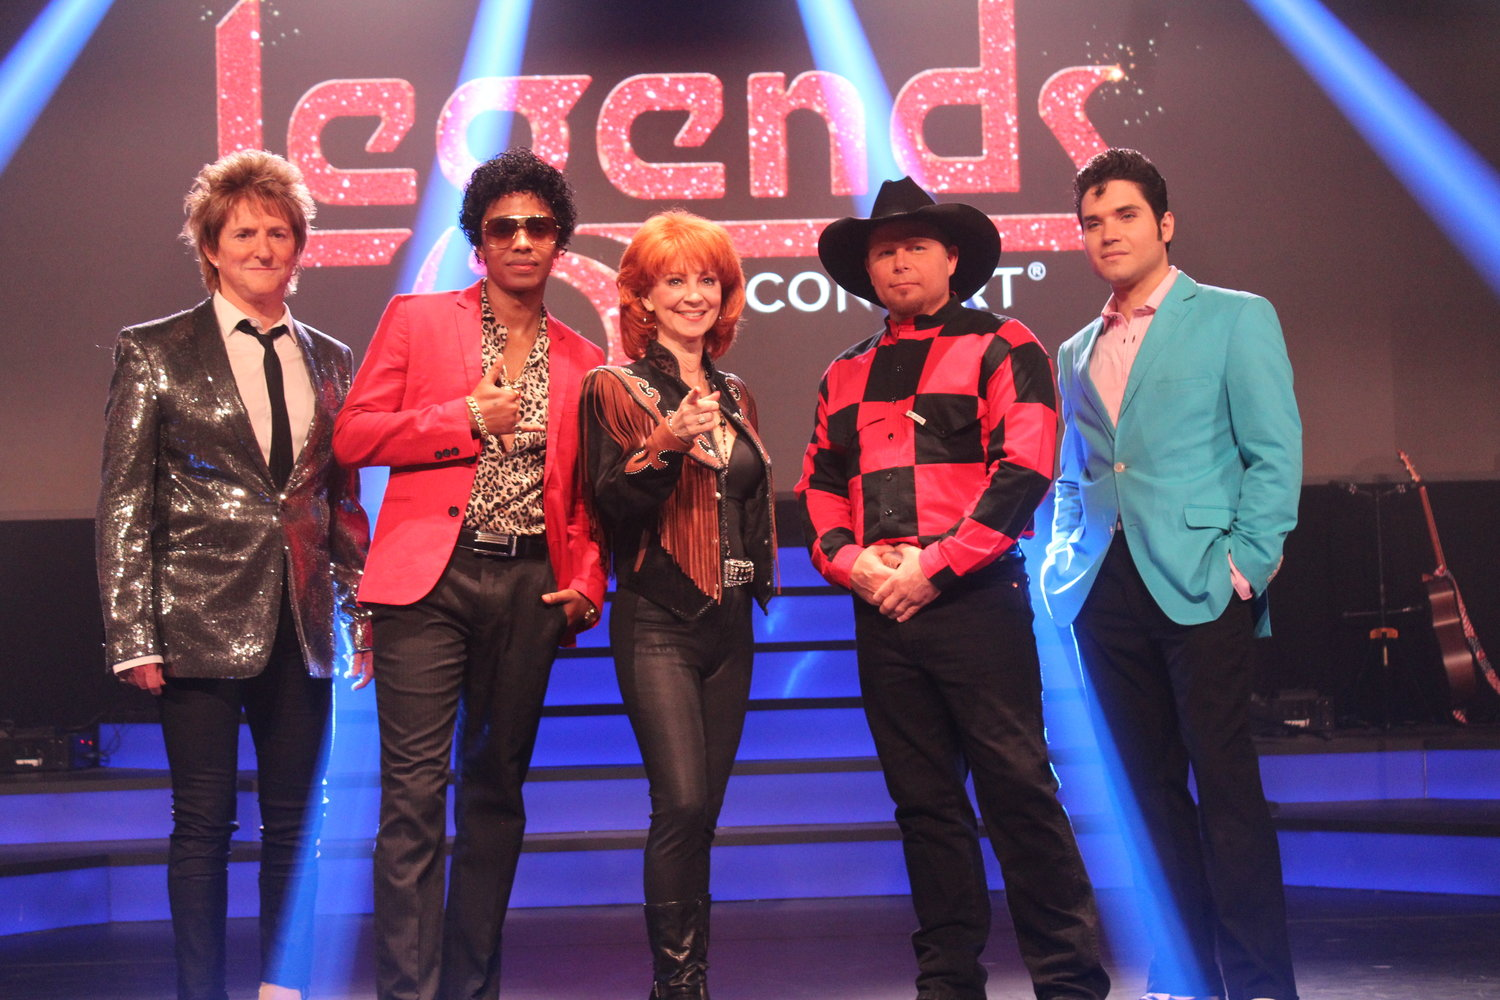 The opening tribute artists for OWA's Legends in Concert are Rob Caudill (Rod Stewart), Isaiah (Bruno Mars), Corrie Sachs (Reba), Shawn Gerhard (Garth Brooks), and Victor Trevino, Jr (Elvis).